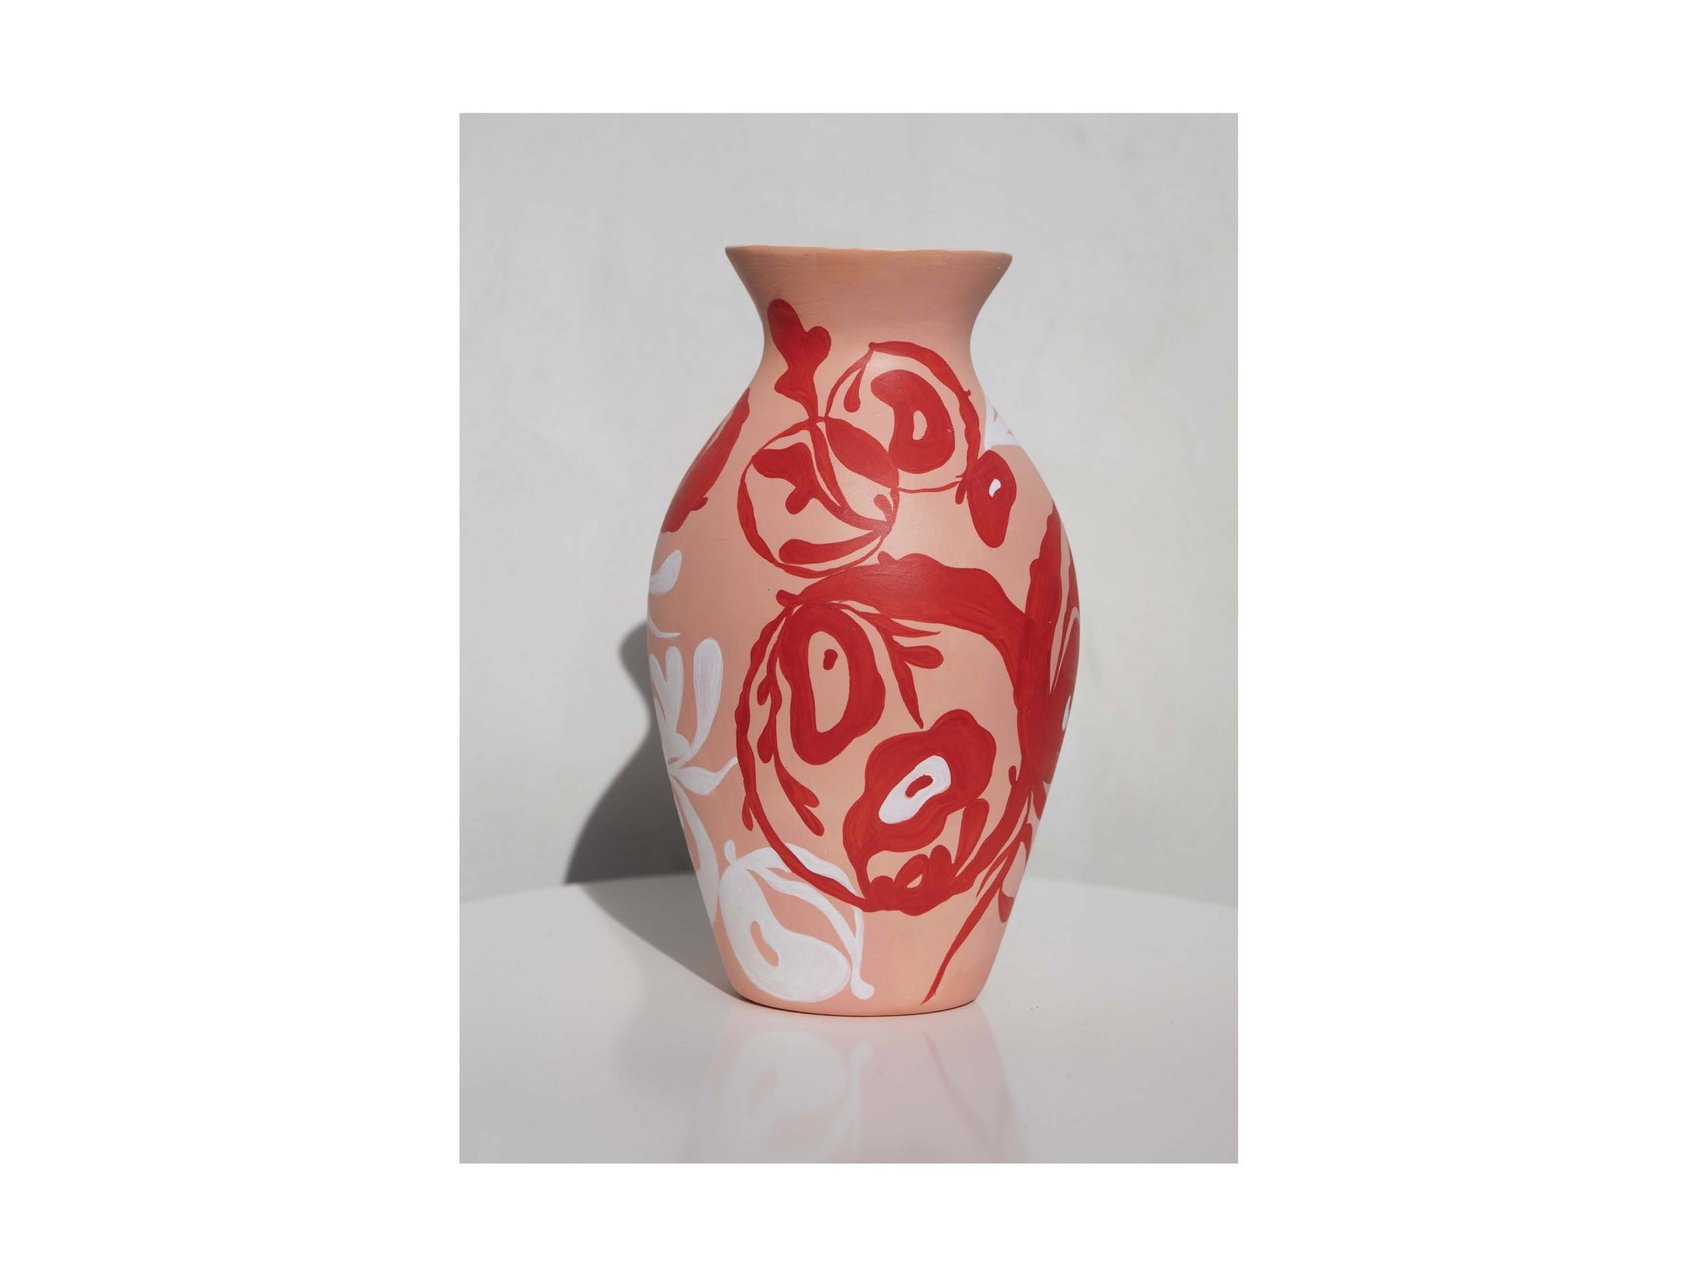 """25 Unexpected Ways To Say """"I Love You"""" this Valentine's Day, Amanda Asaad Mounser Lunar Cycle in Bisque 2 Vase"""